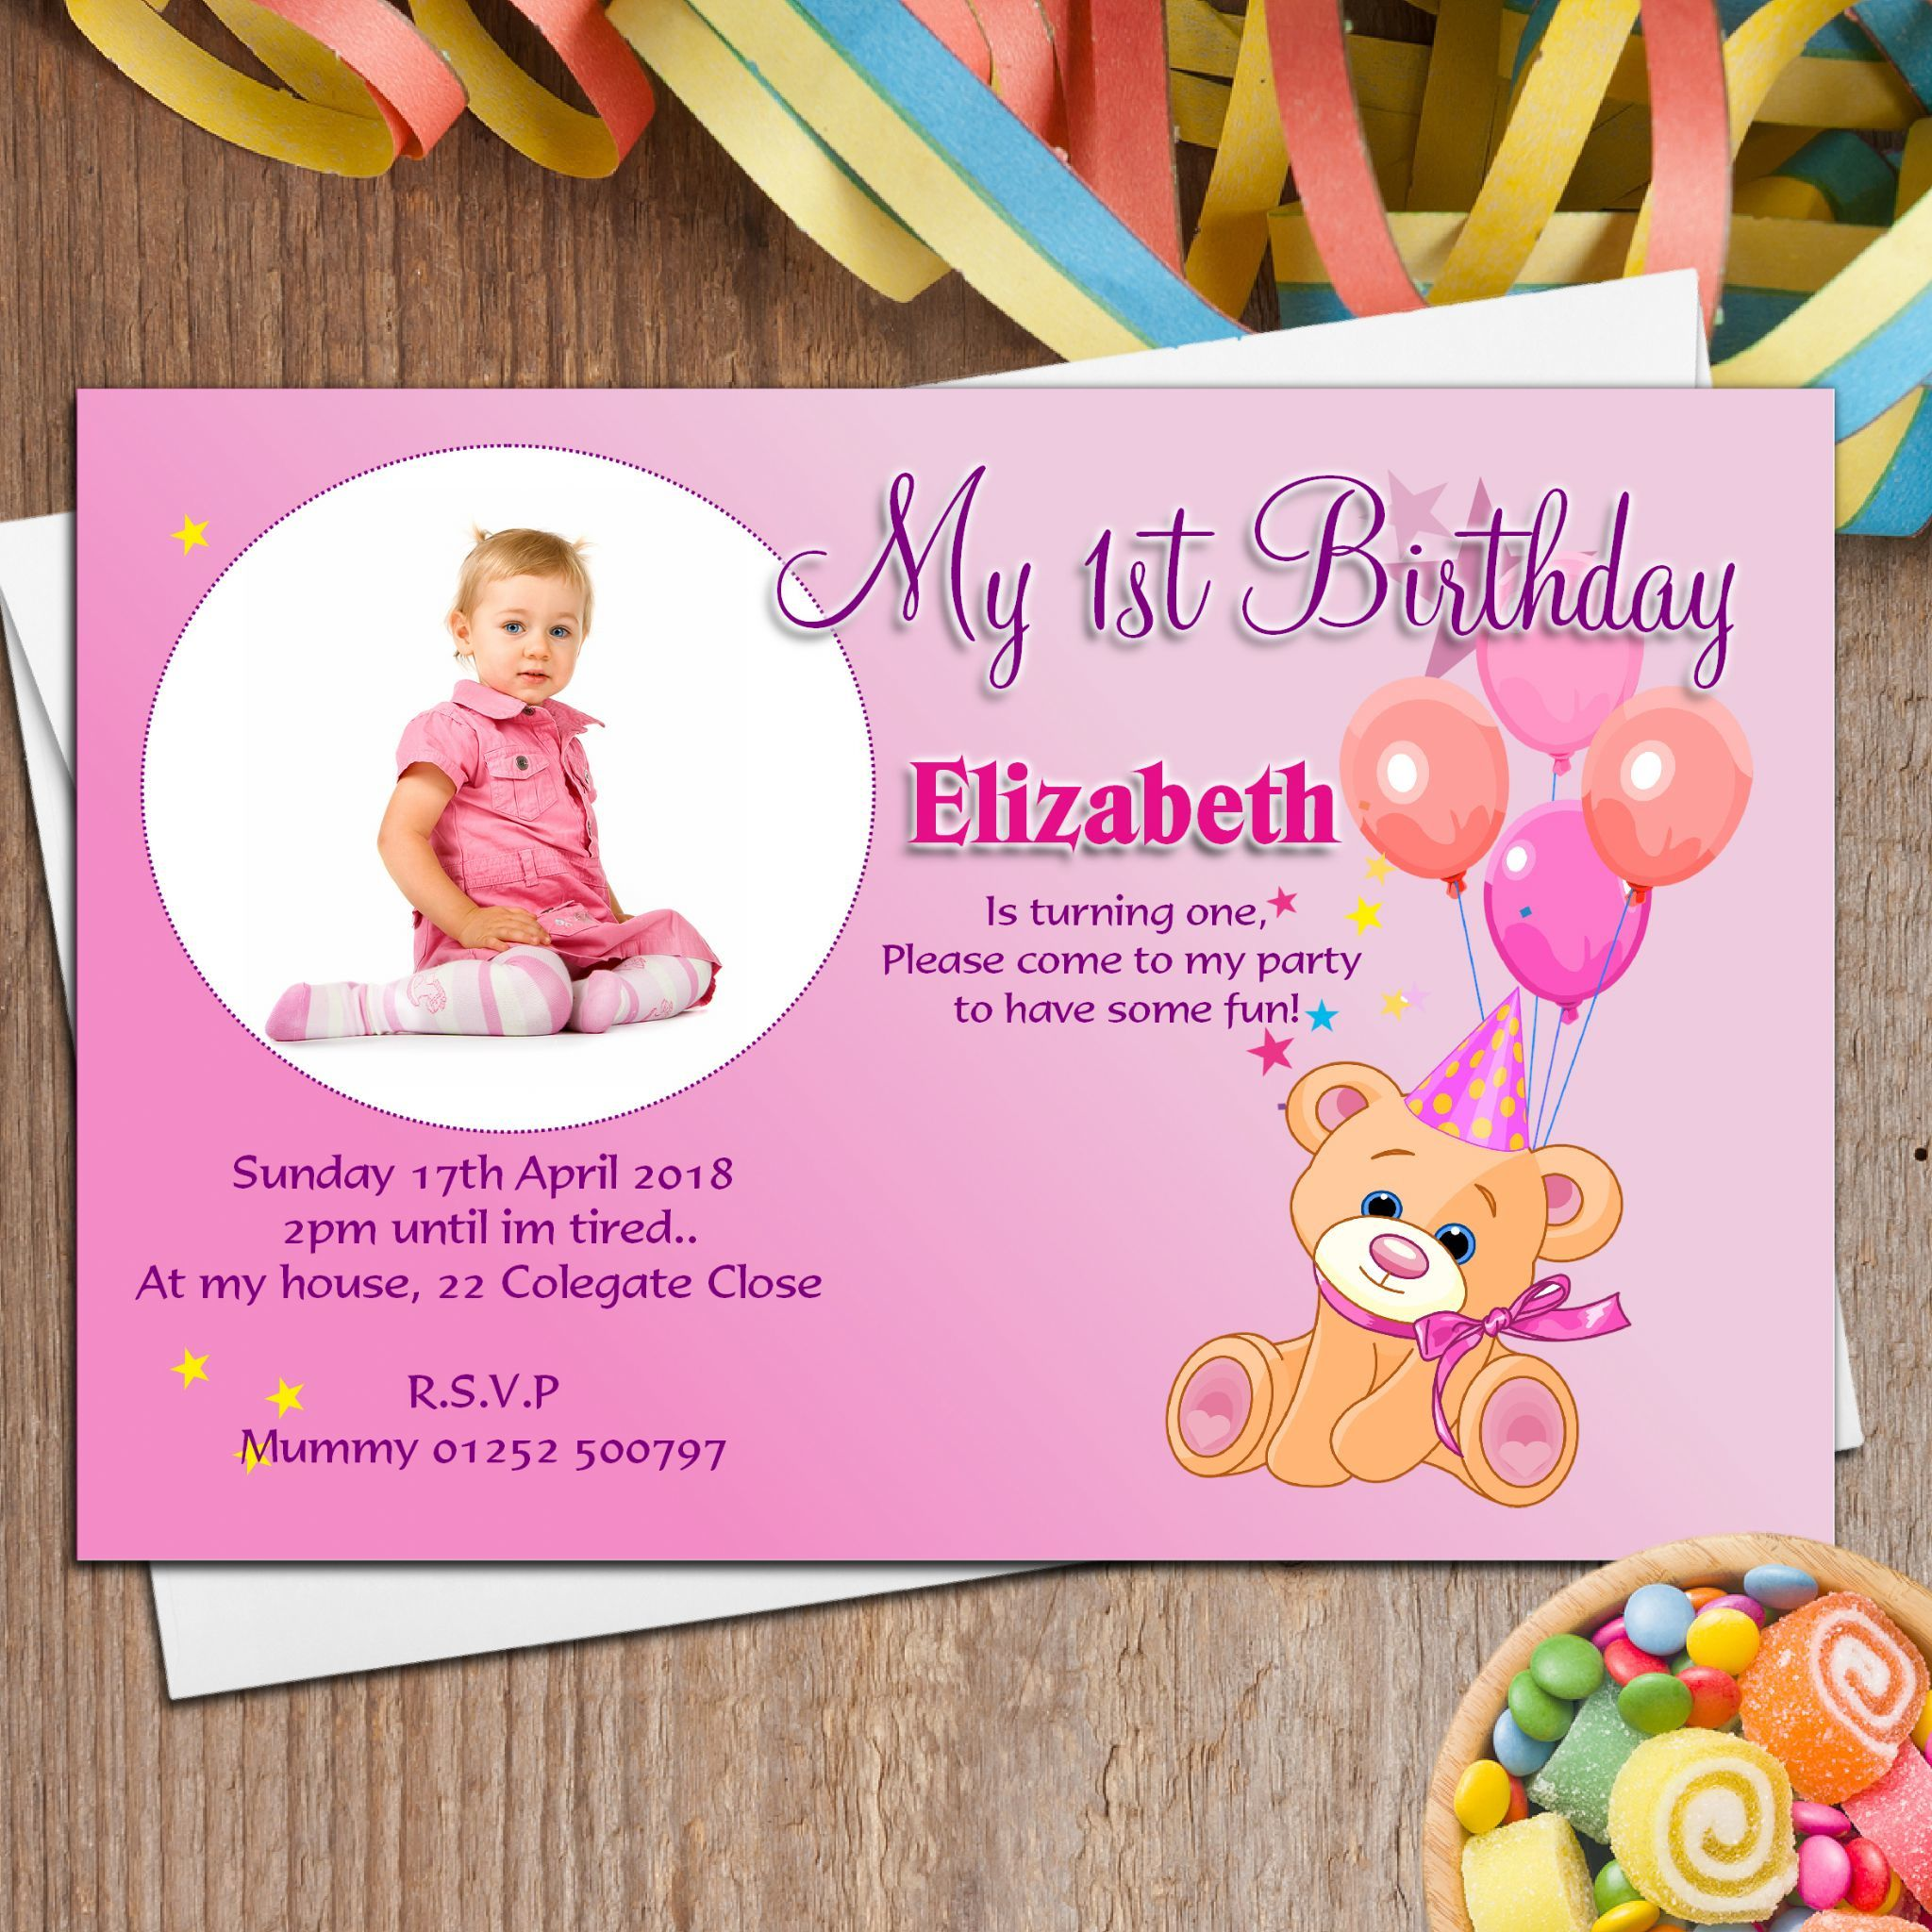 Cool How To Create Personalized Birthday Invitations Free Check More At Http Www Egreeting Ecards Com 2016 10 10 How To Create Personalized Birthday Invitatio